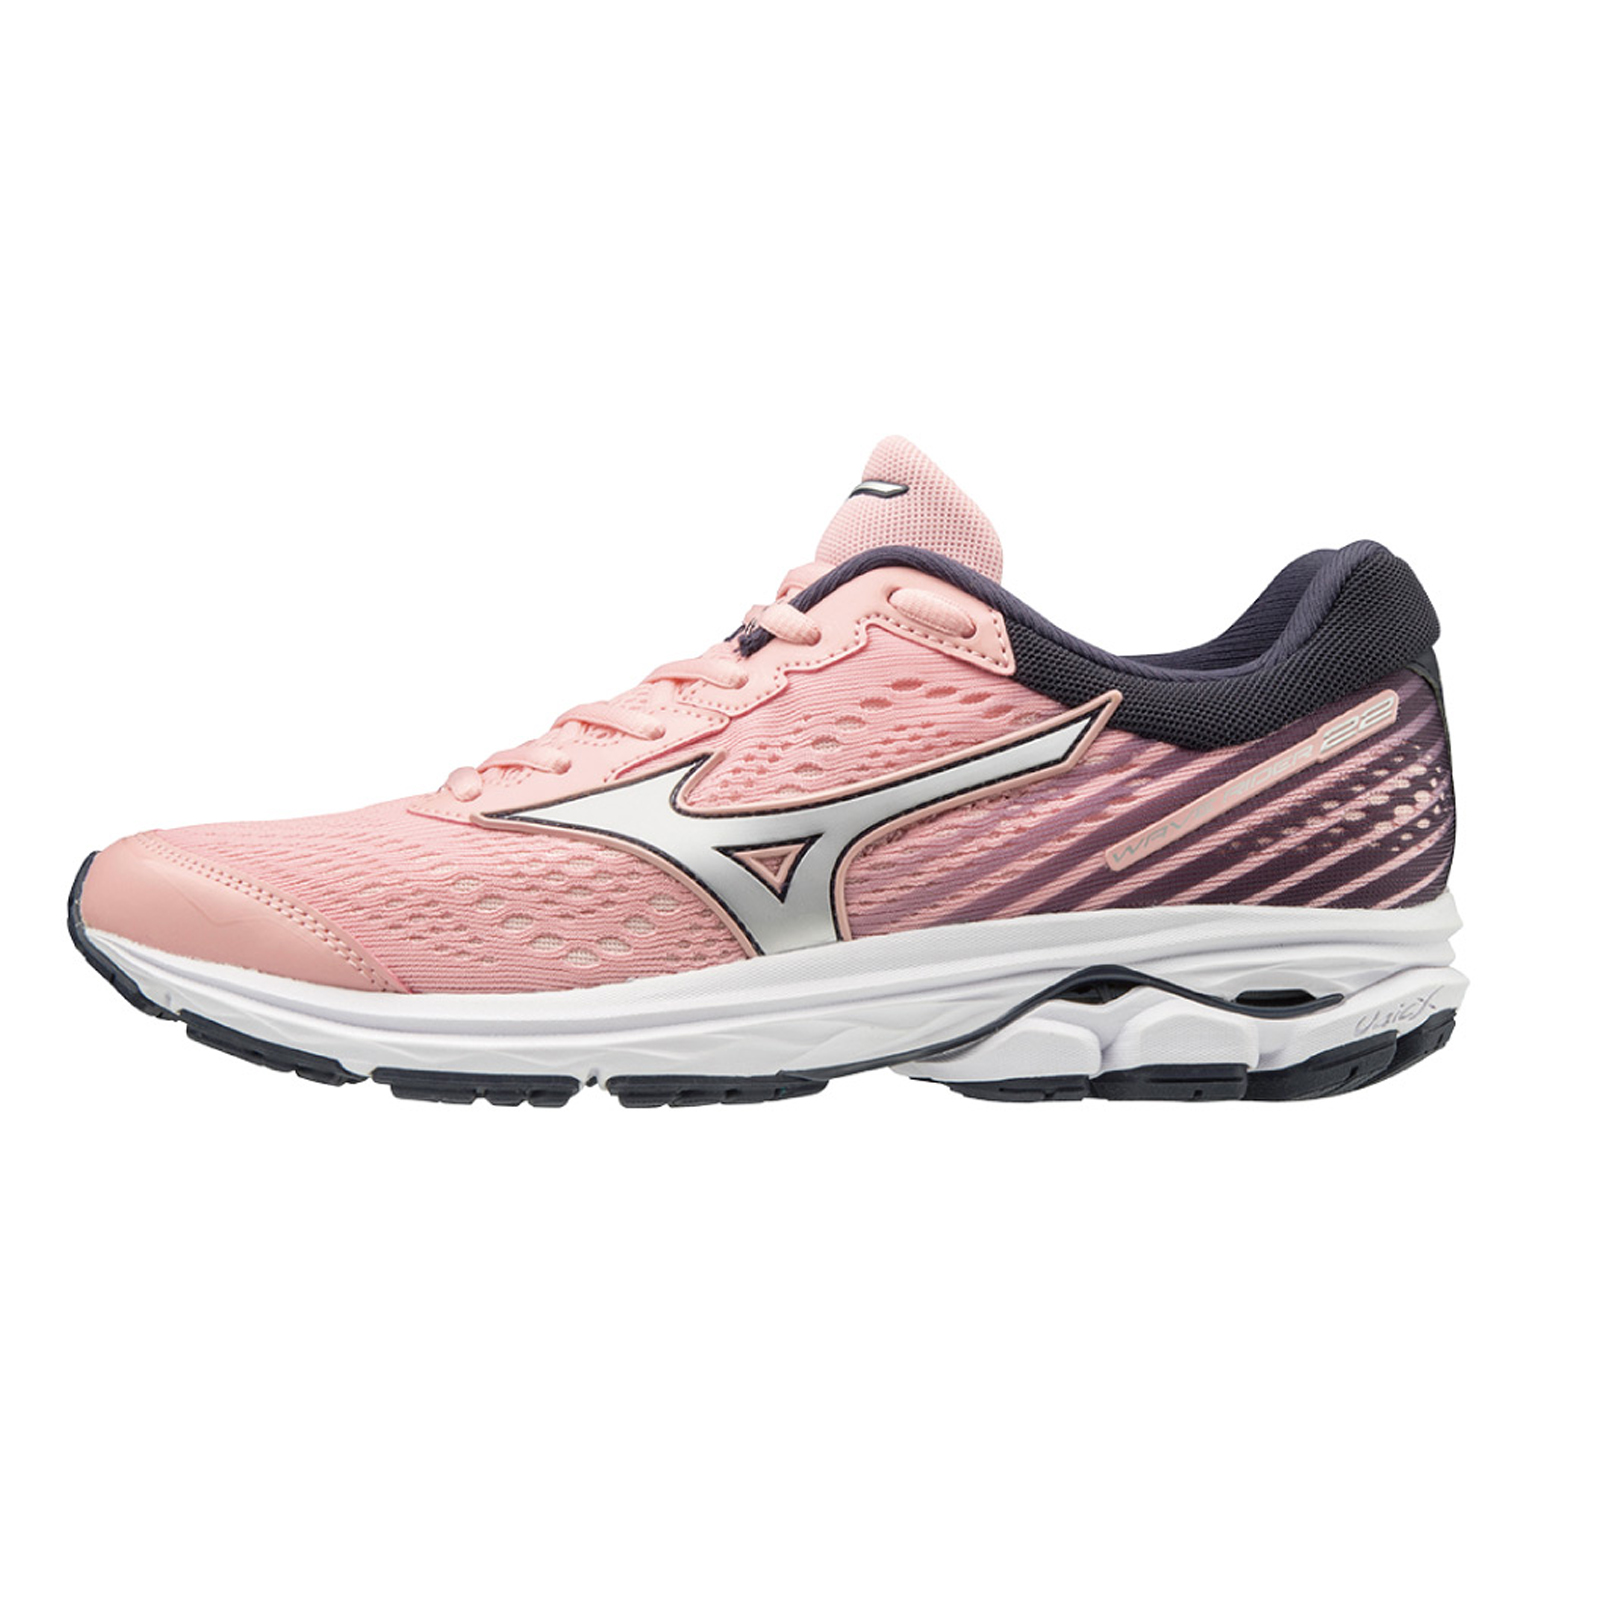 mizuno wave sky 3 amazon offer july olympics